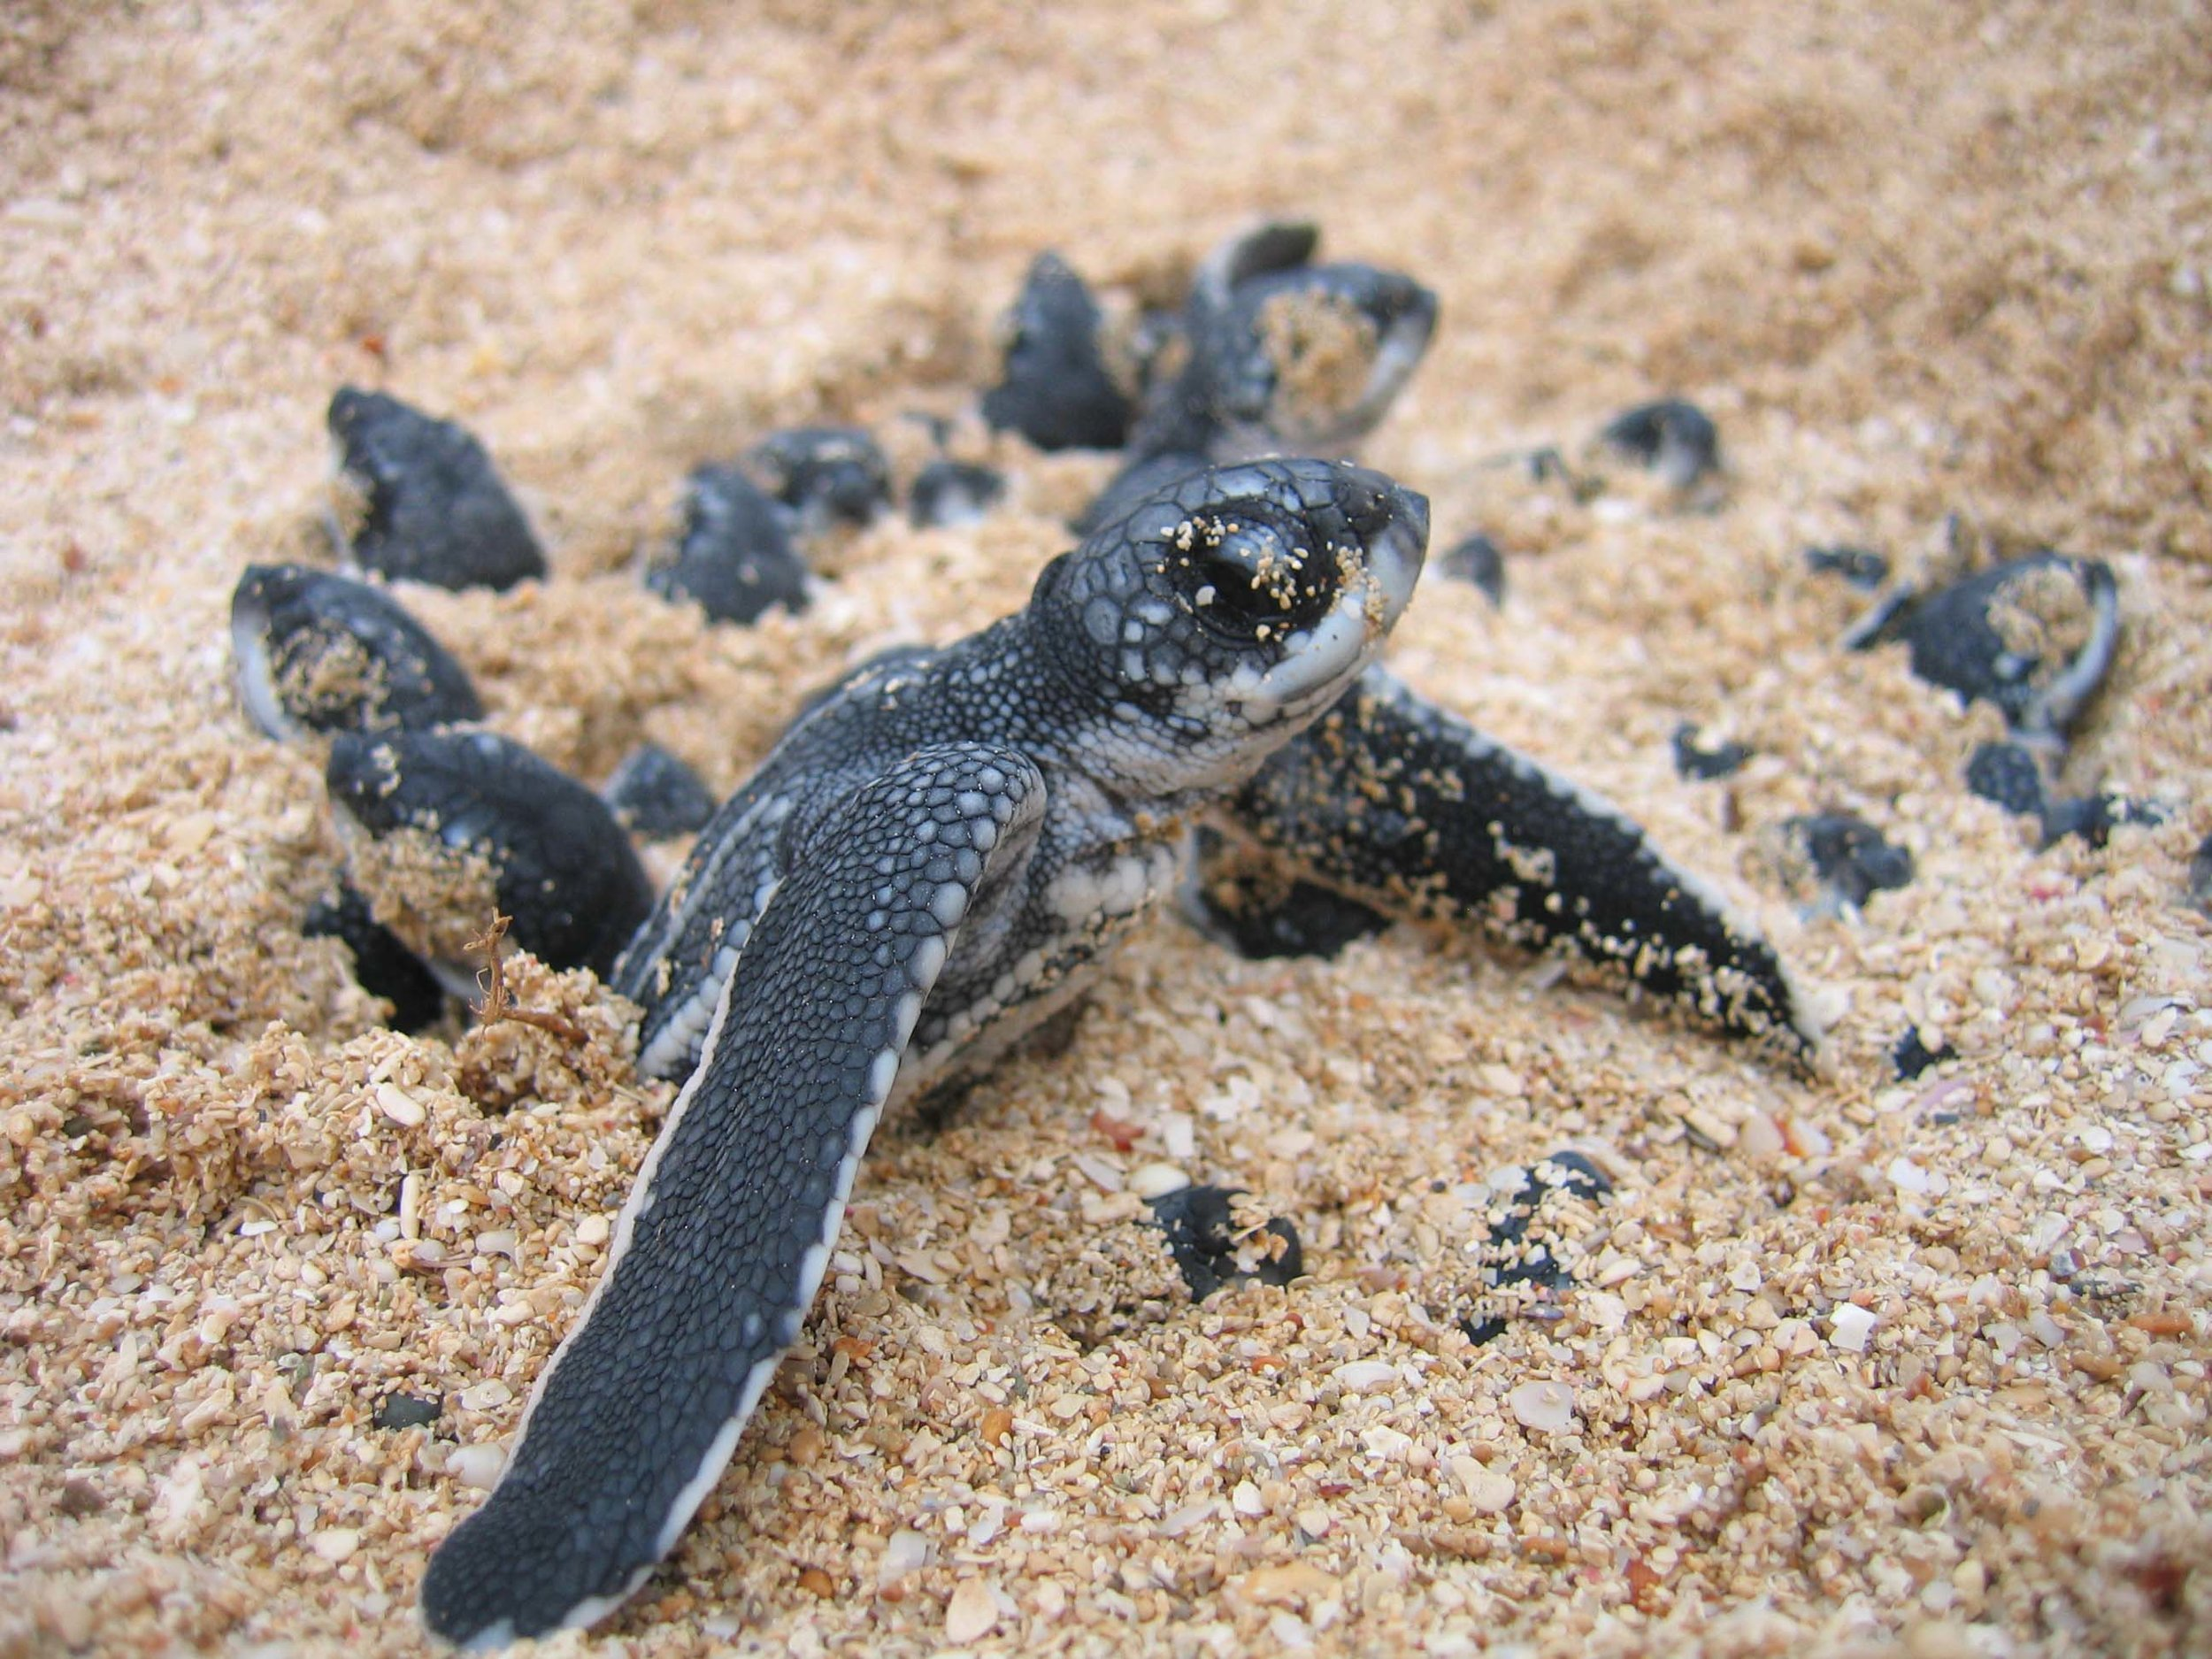 A leatherback hatchling emerges from the sand on St. Croix, U.S. Virgin Islands. Scientists analyzed DNA from more than 17,000 hatchlings to answer important questions about population demography and life history. © Kelly Stewart